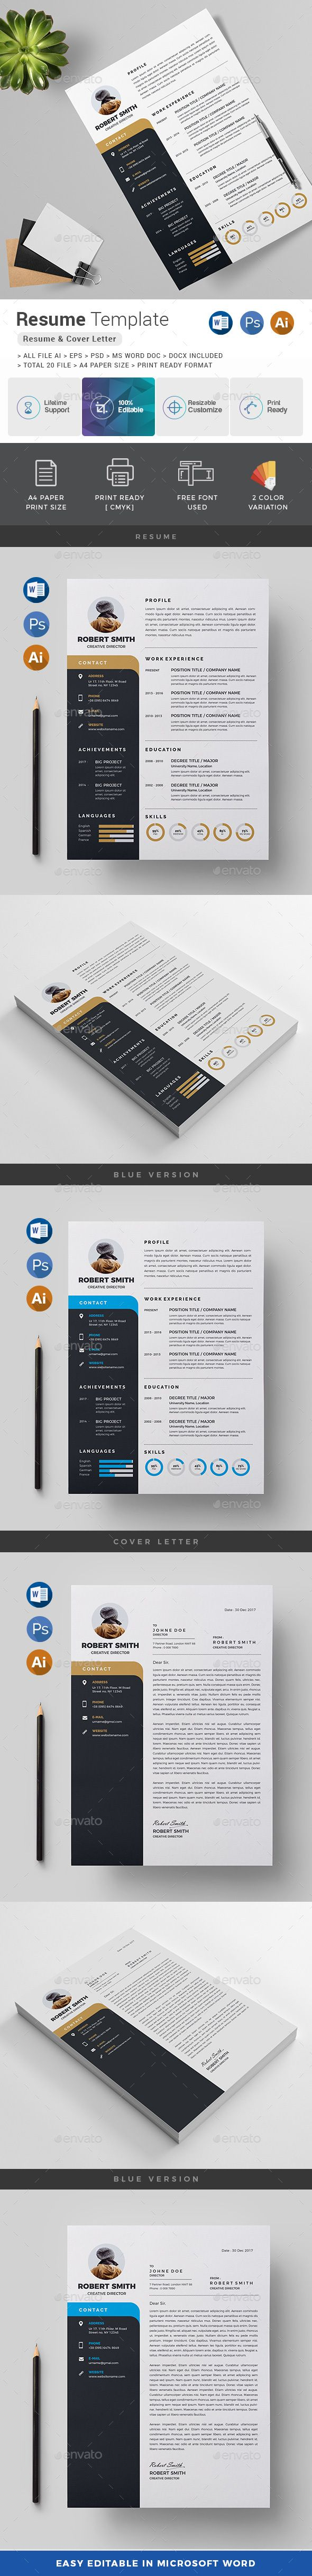 Resume | Template, Resume cover letters and Resume cv